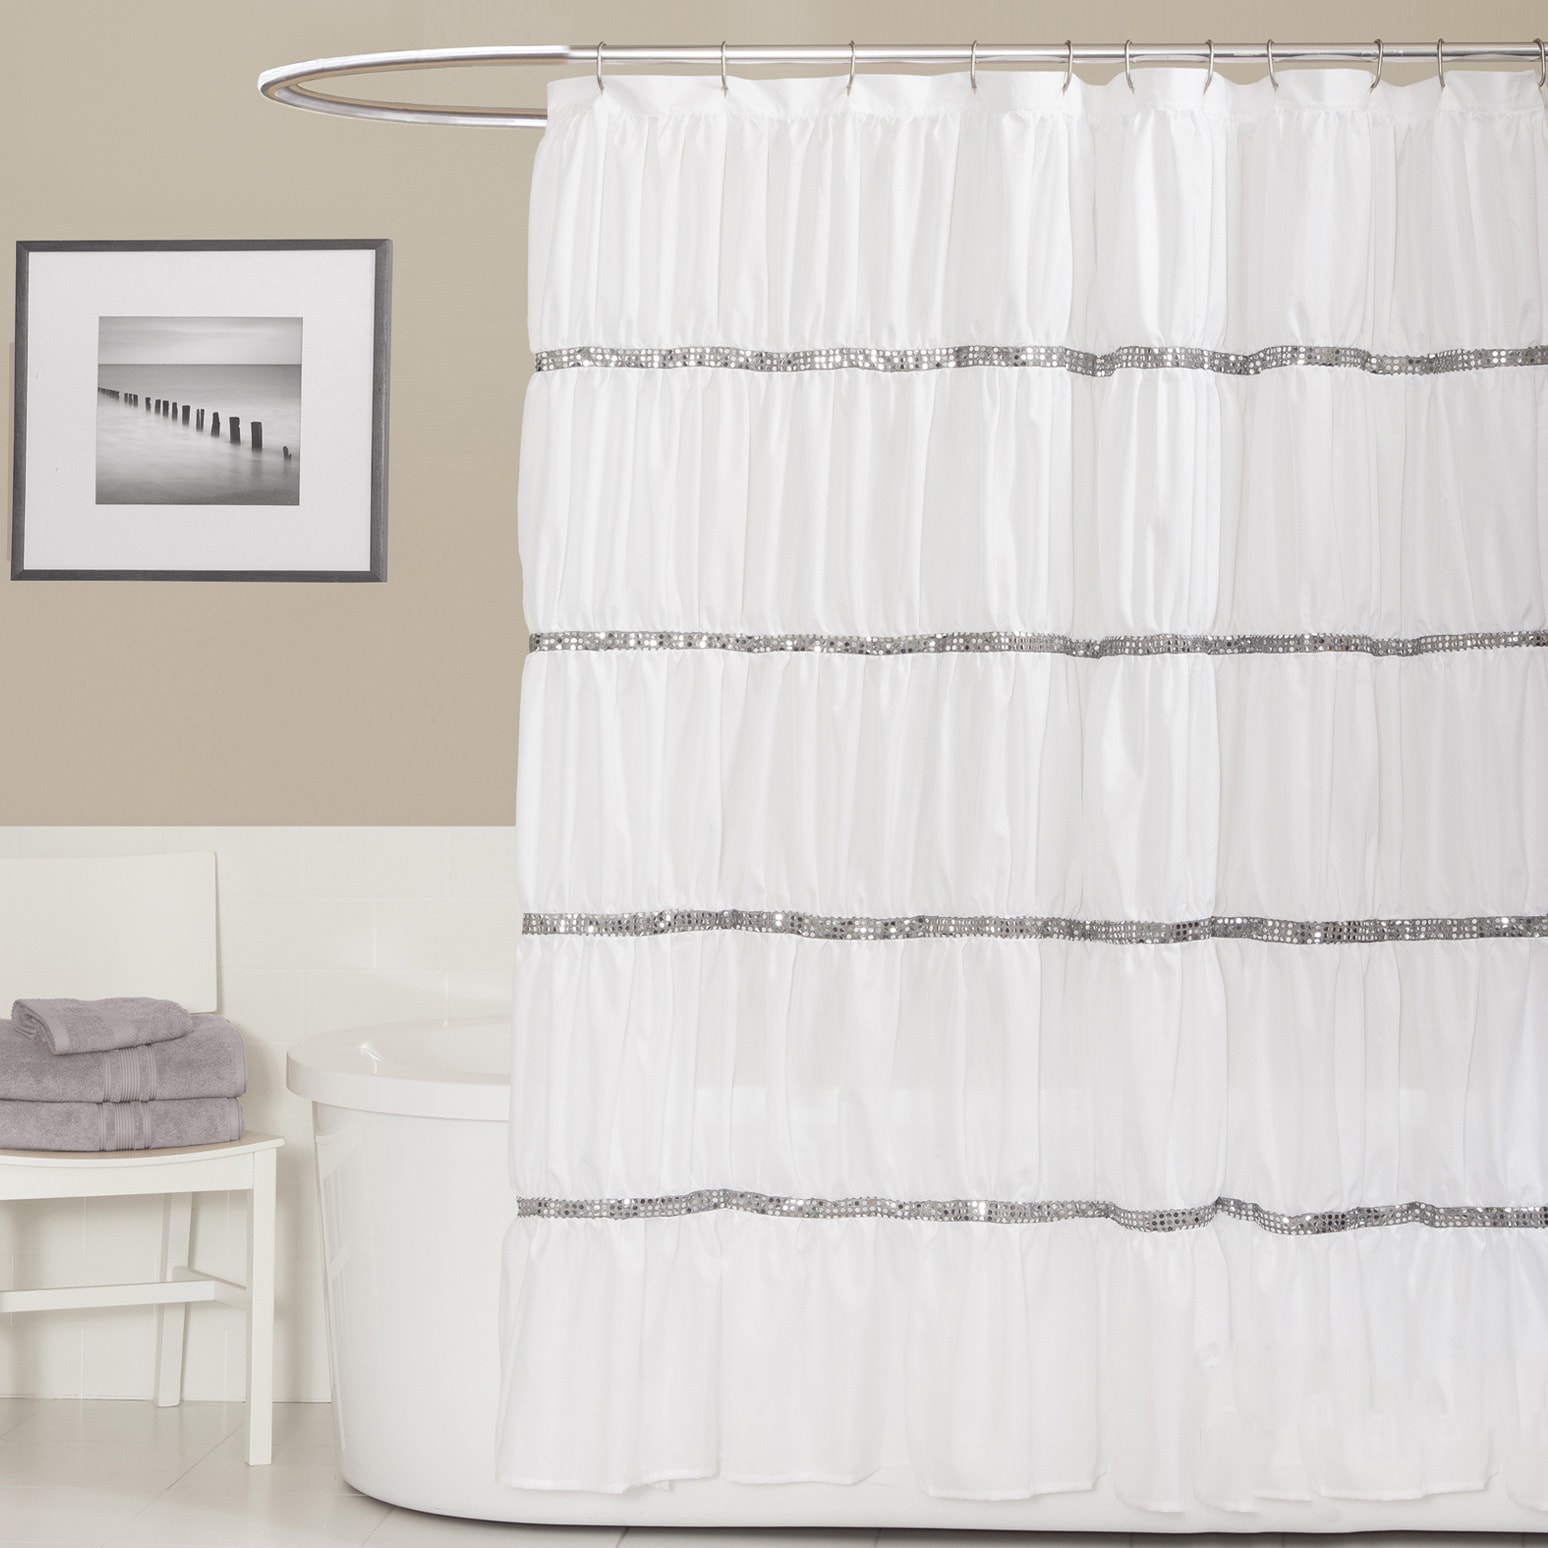 dp com home lucia by white kitchen curtains amazon lush shower decor curtain inch